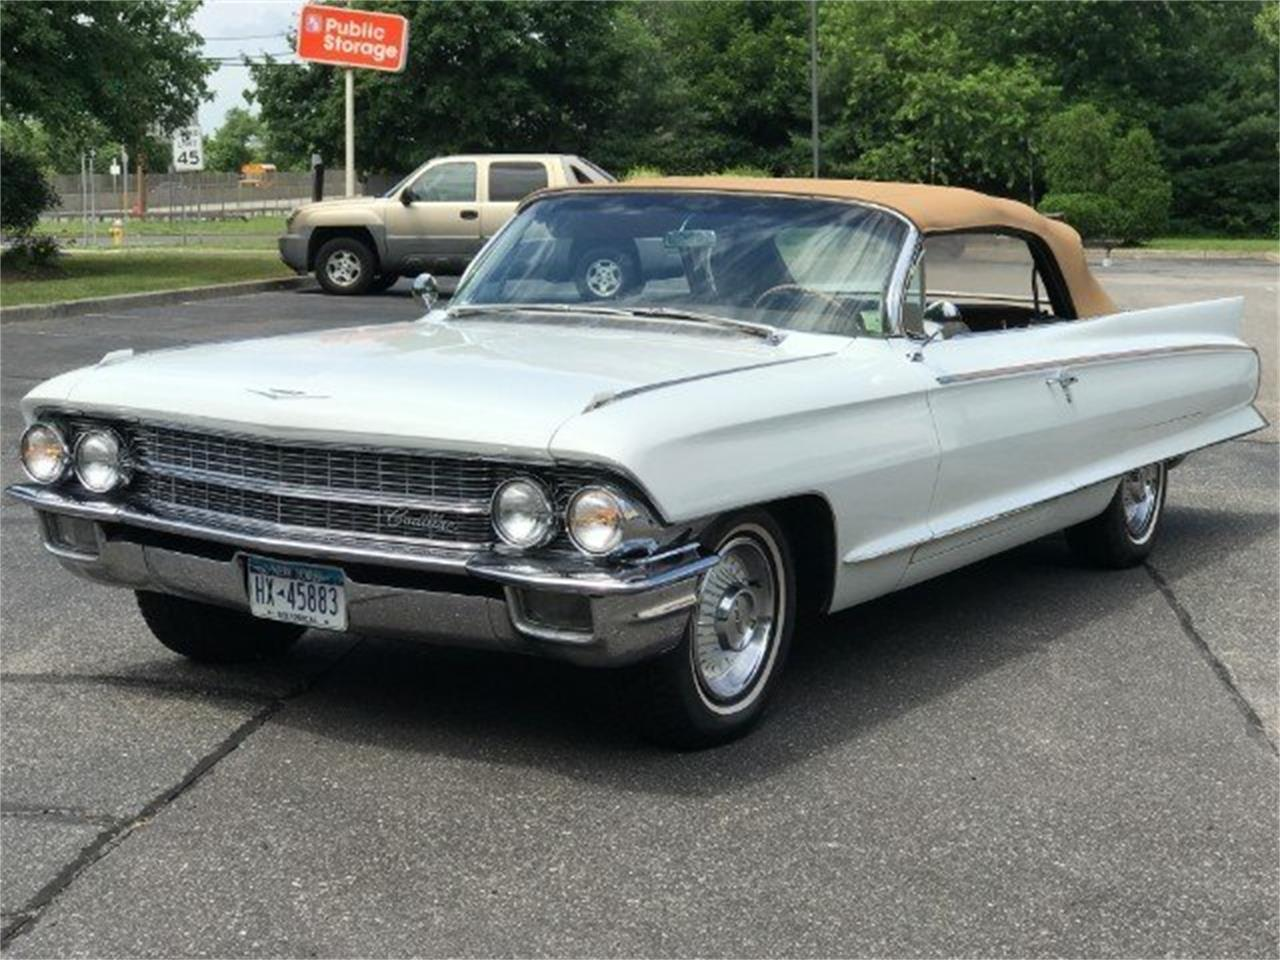 Large Picture of '62 Cadillac Eldorado - $29,500.00 Offered by Hollywood Motors - LDHM